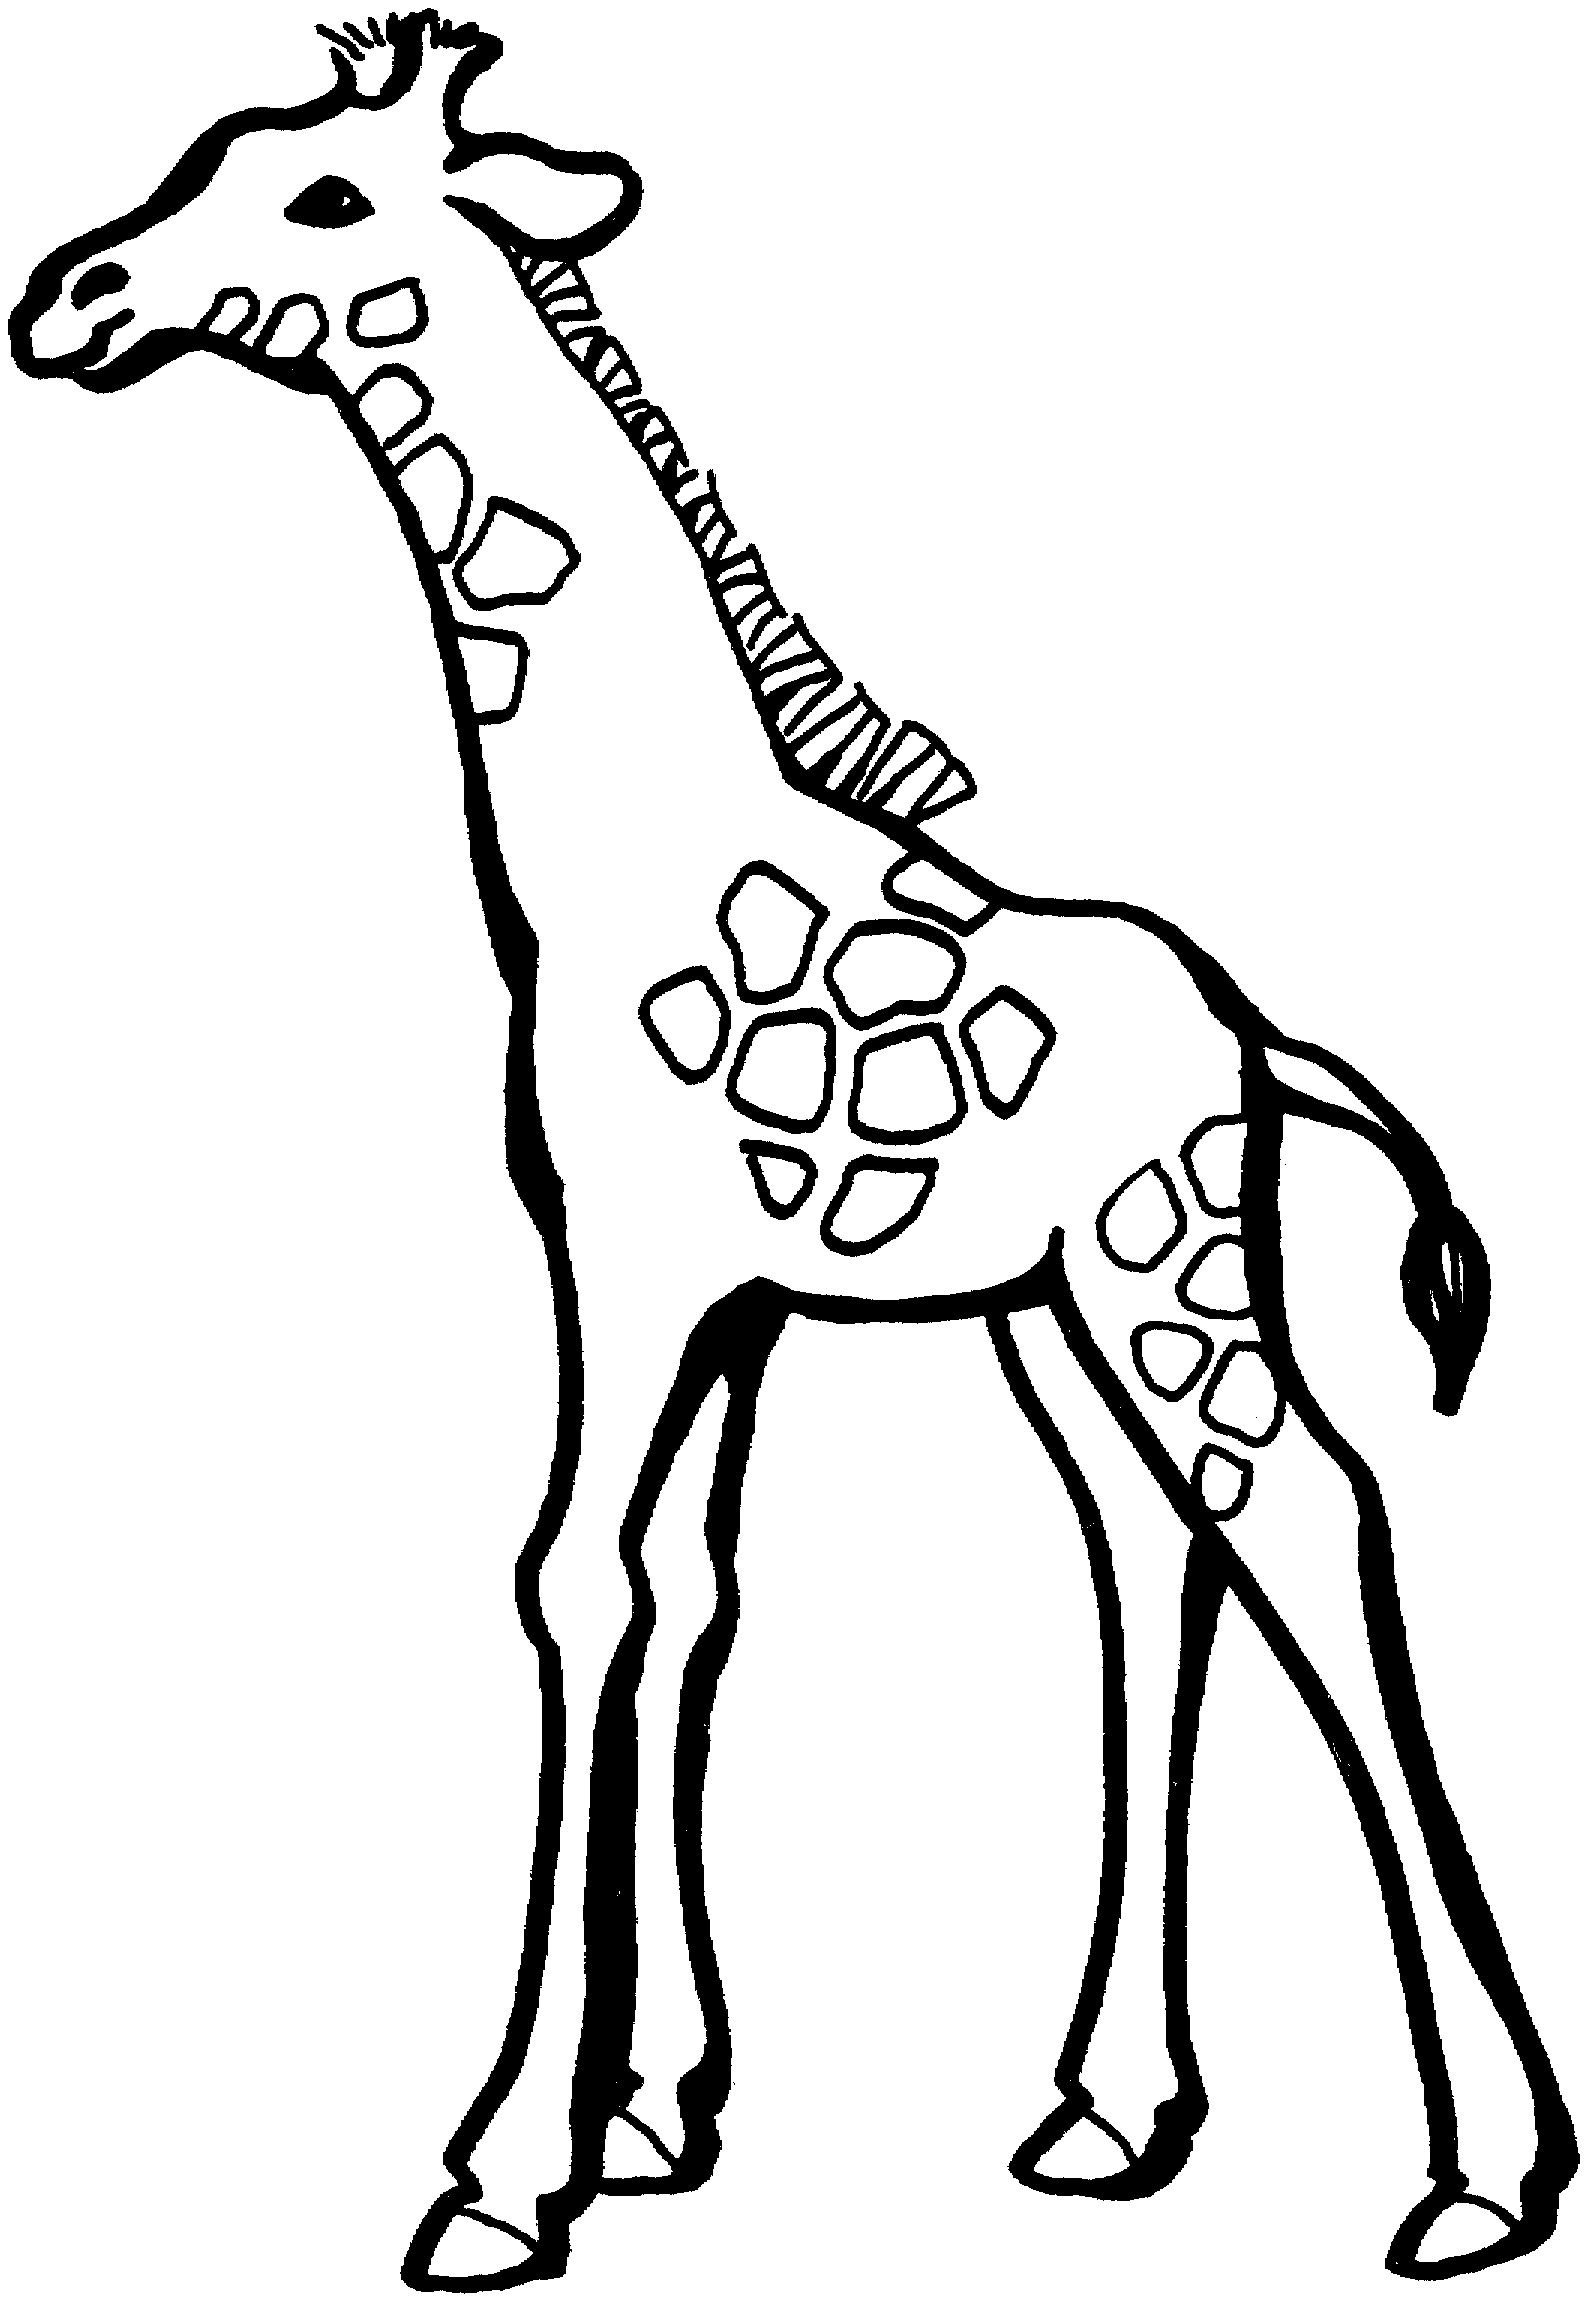 Baby Giraffe Coloring Pages Printable